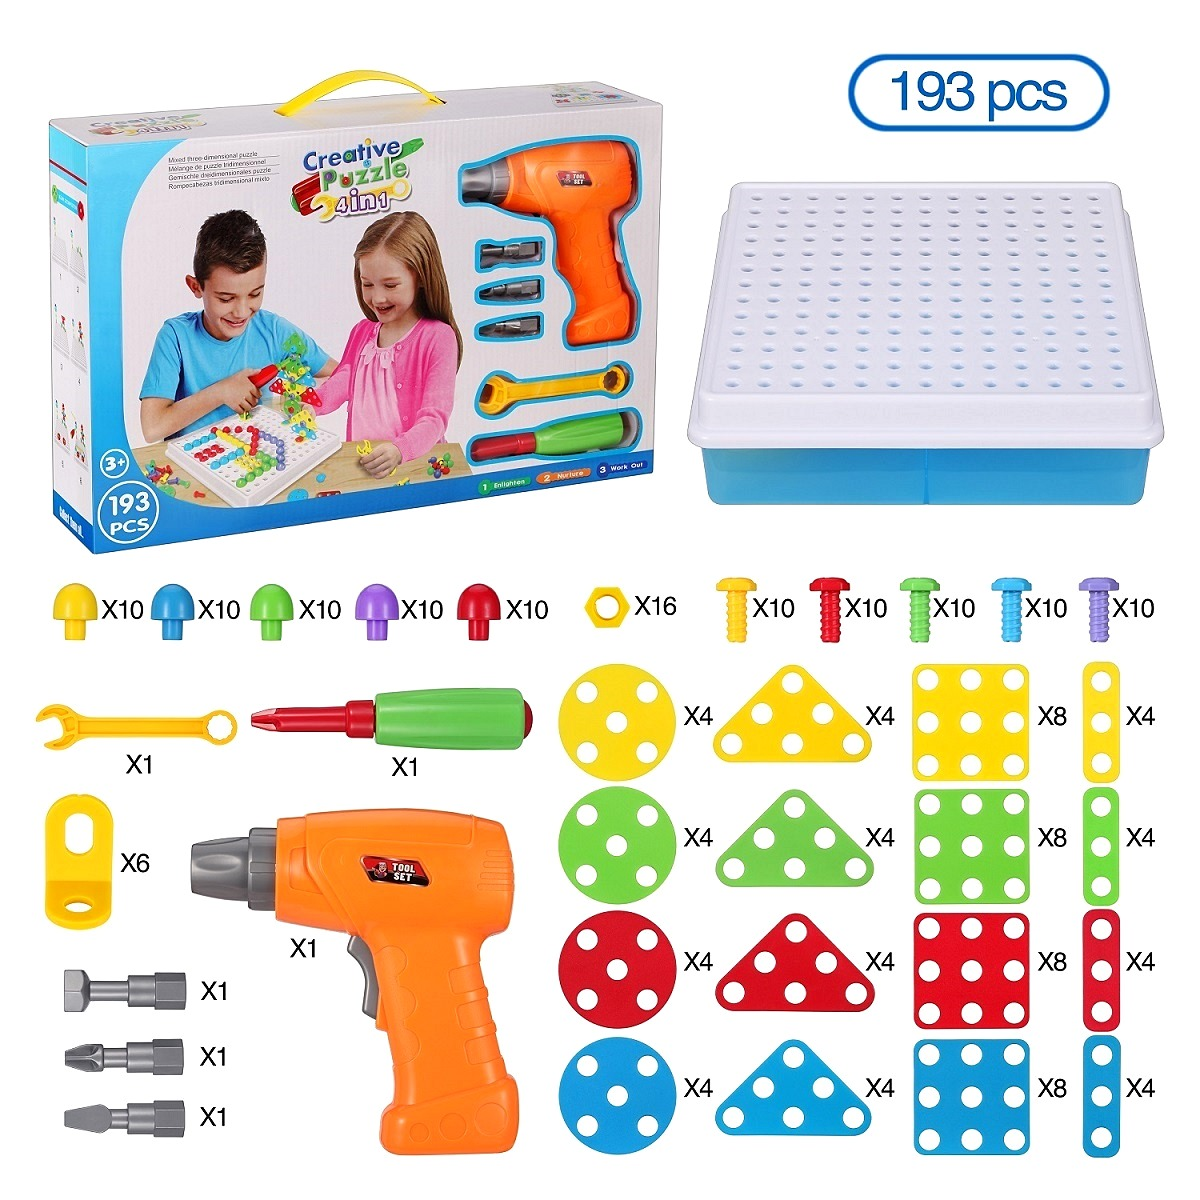 цена STEM Learning Toys Drill Play Creative Educational Games Mosaic Design Kit Construction Engineering Building Blocks Pretend Play